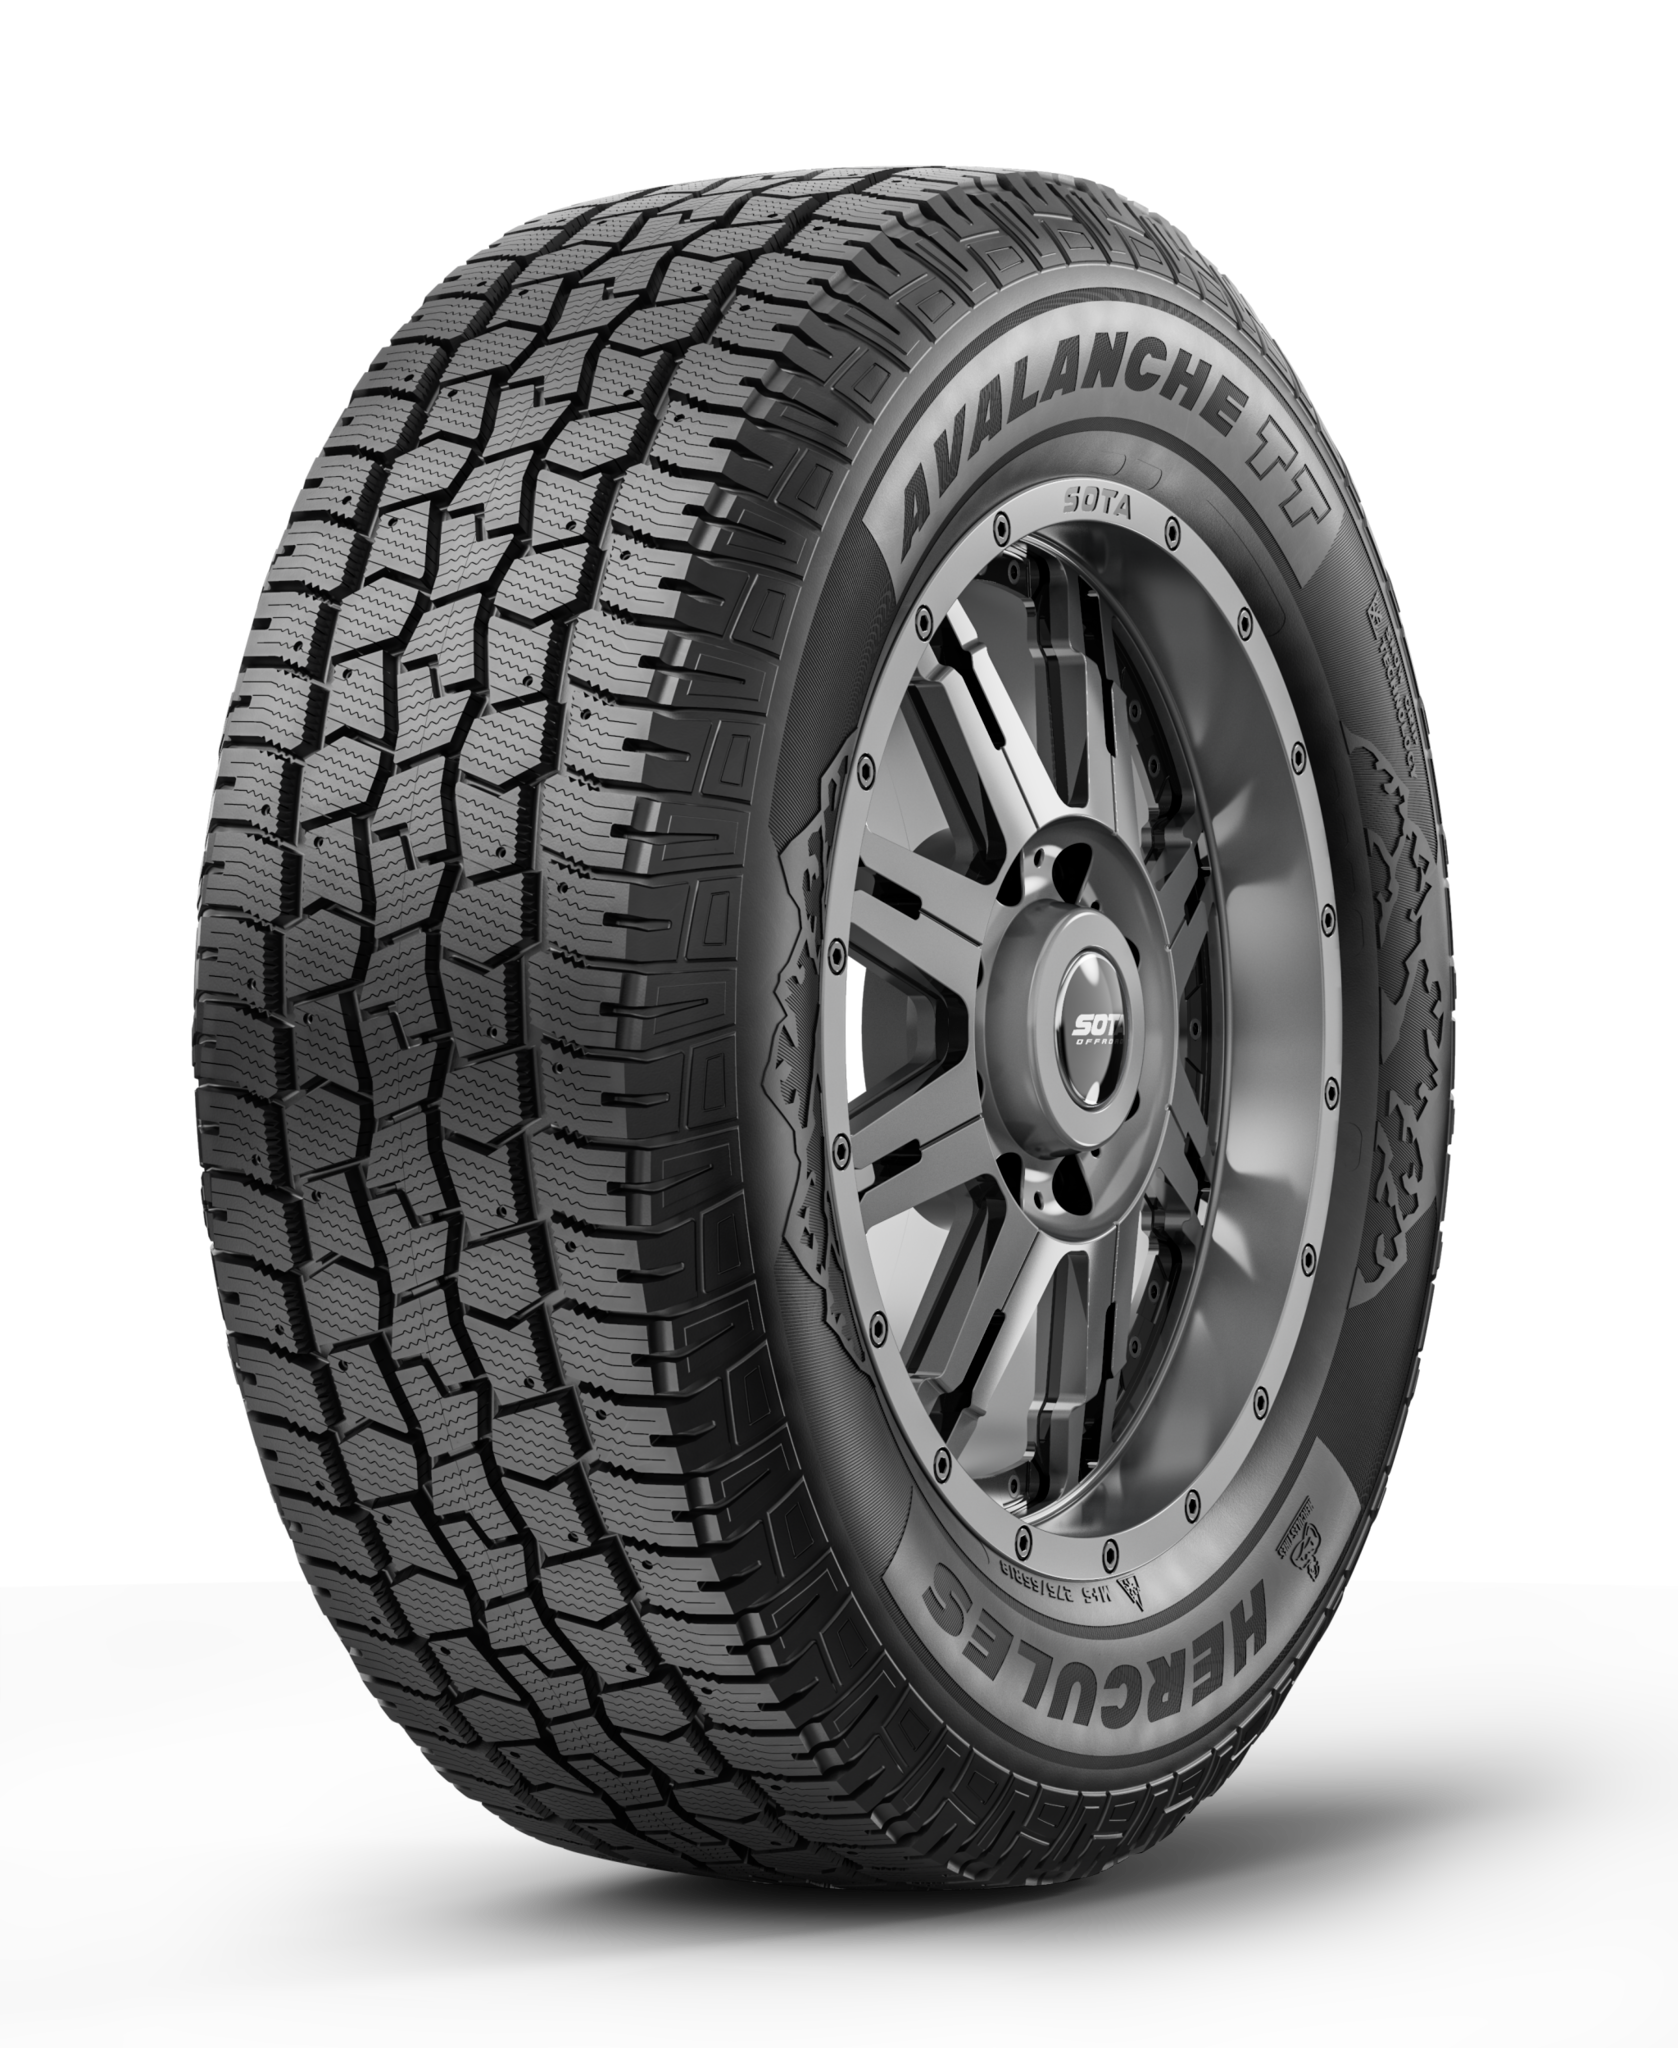 Hercules Winter Tire Lineup Expands with New Avalanche TT